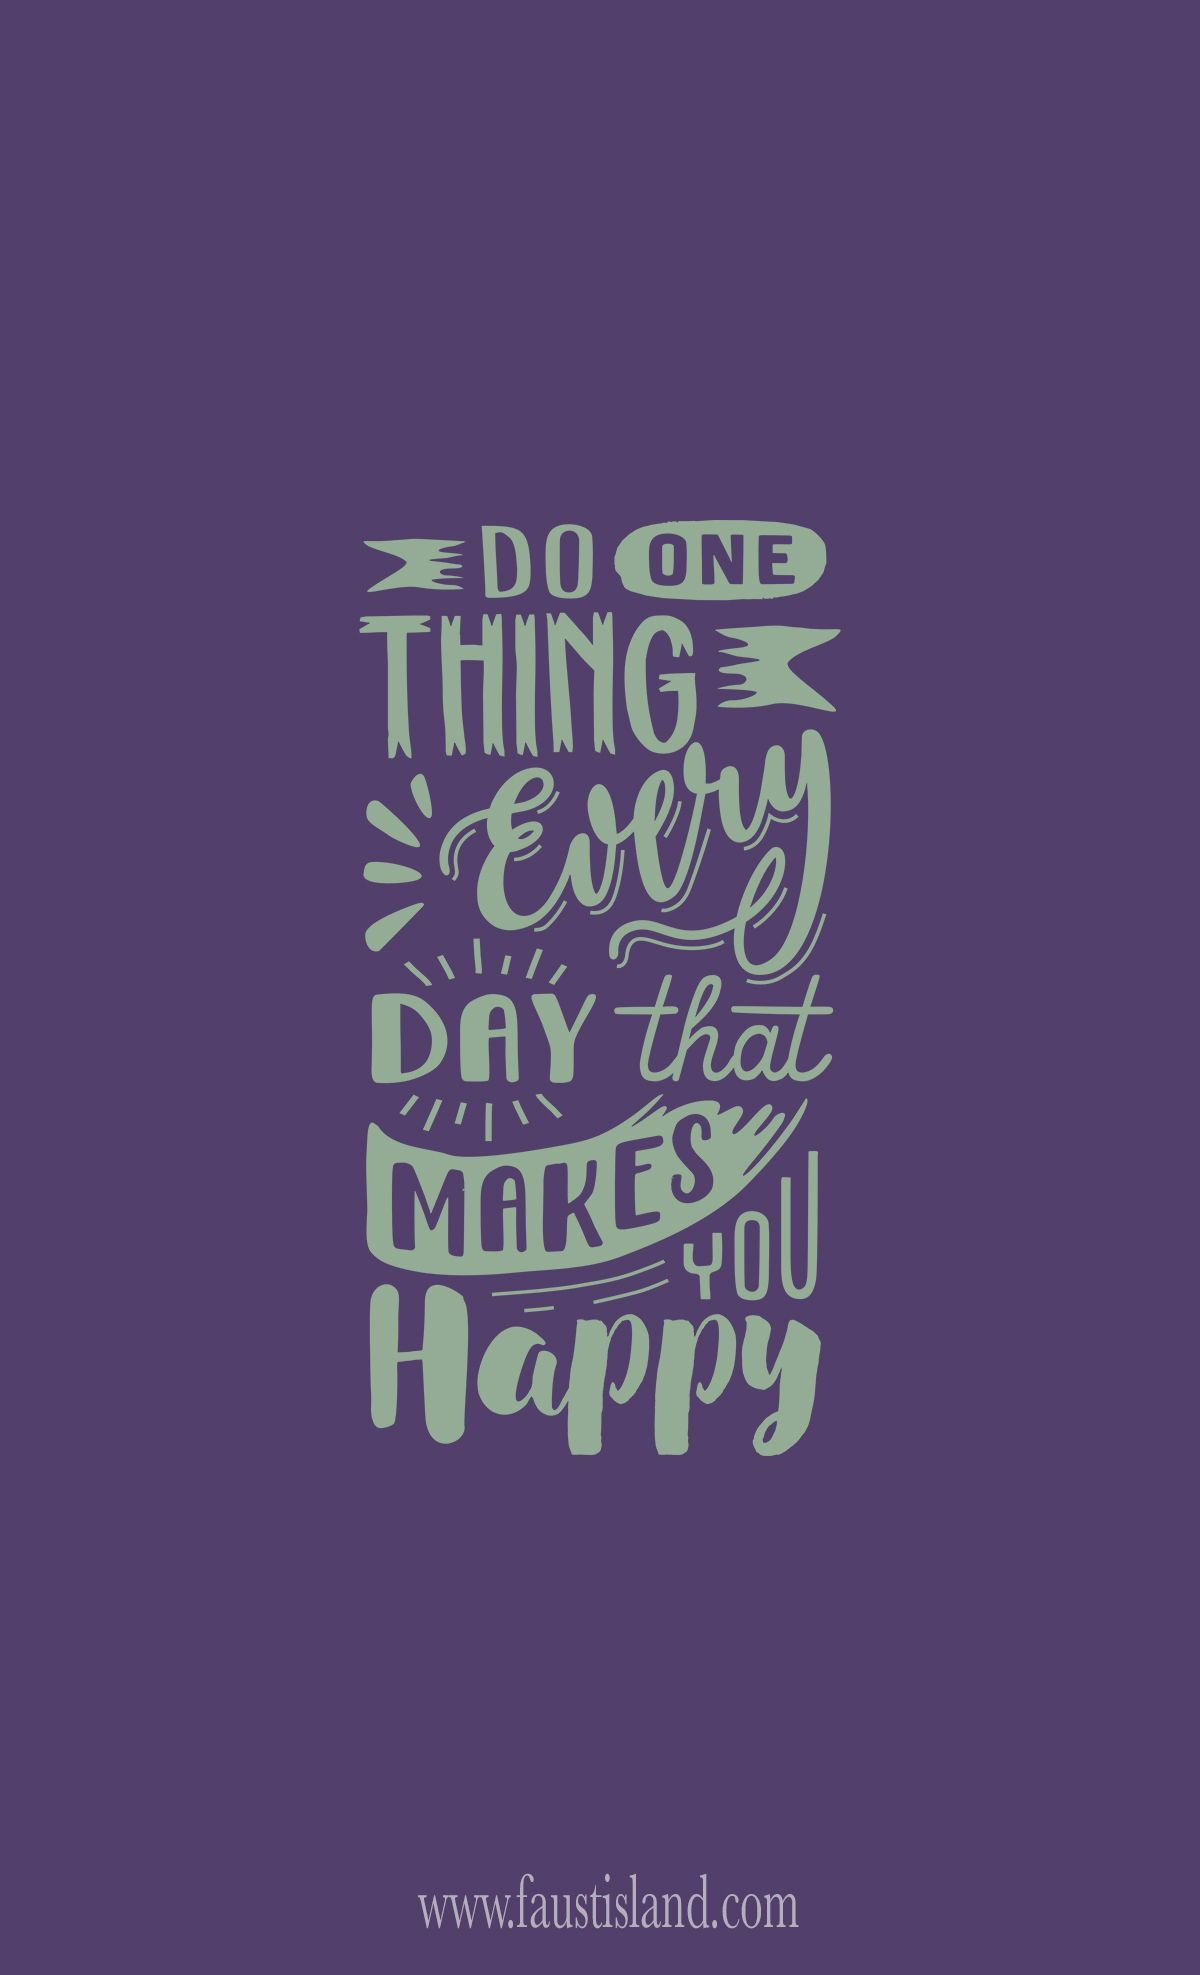 Monday Motivation Inspirational Quotes And Lettering From Healthy Mom Blog Faust Island 2021 Healthy Mom Blog Inspirational Quotes Memes Quotes